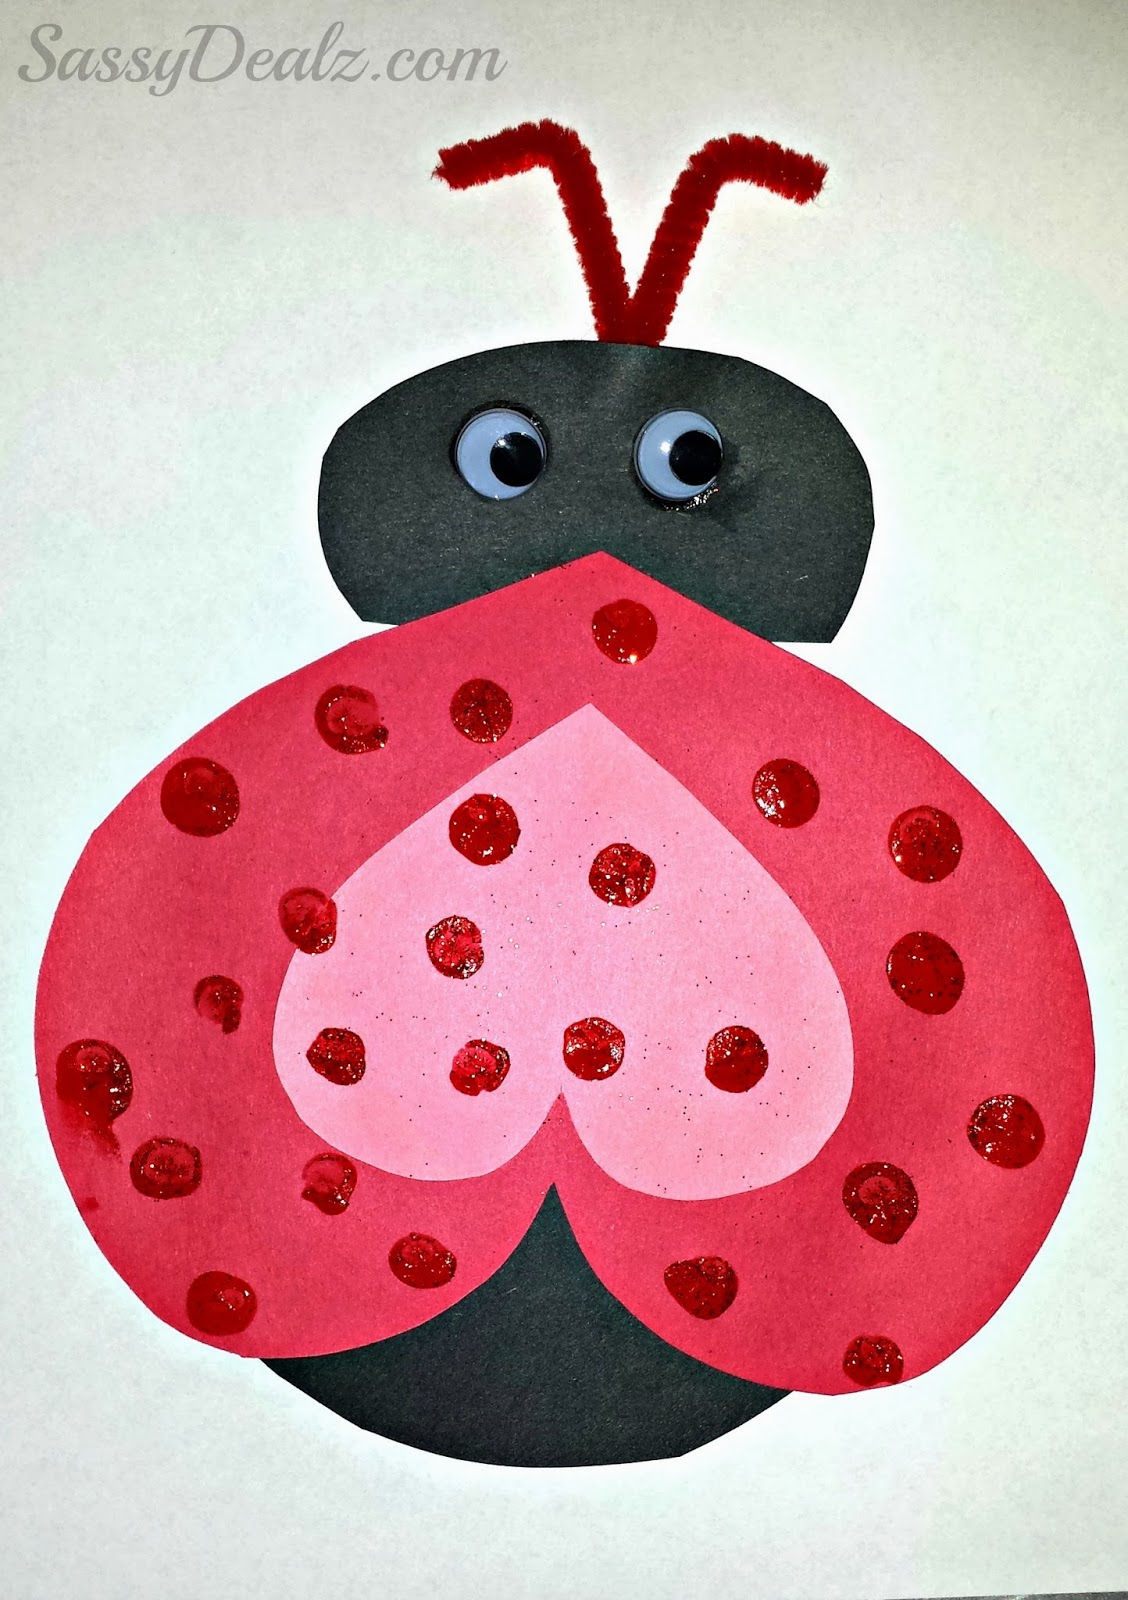 Heart Ladybug Valentines Day Craft For Kids  Crafty Morning